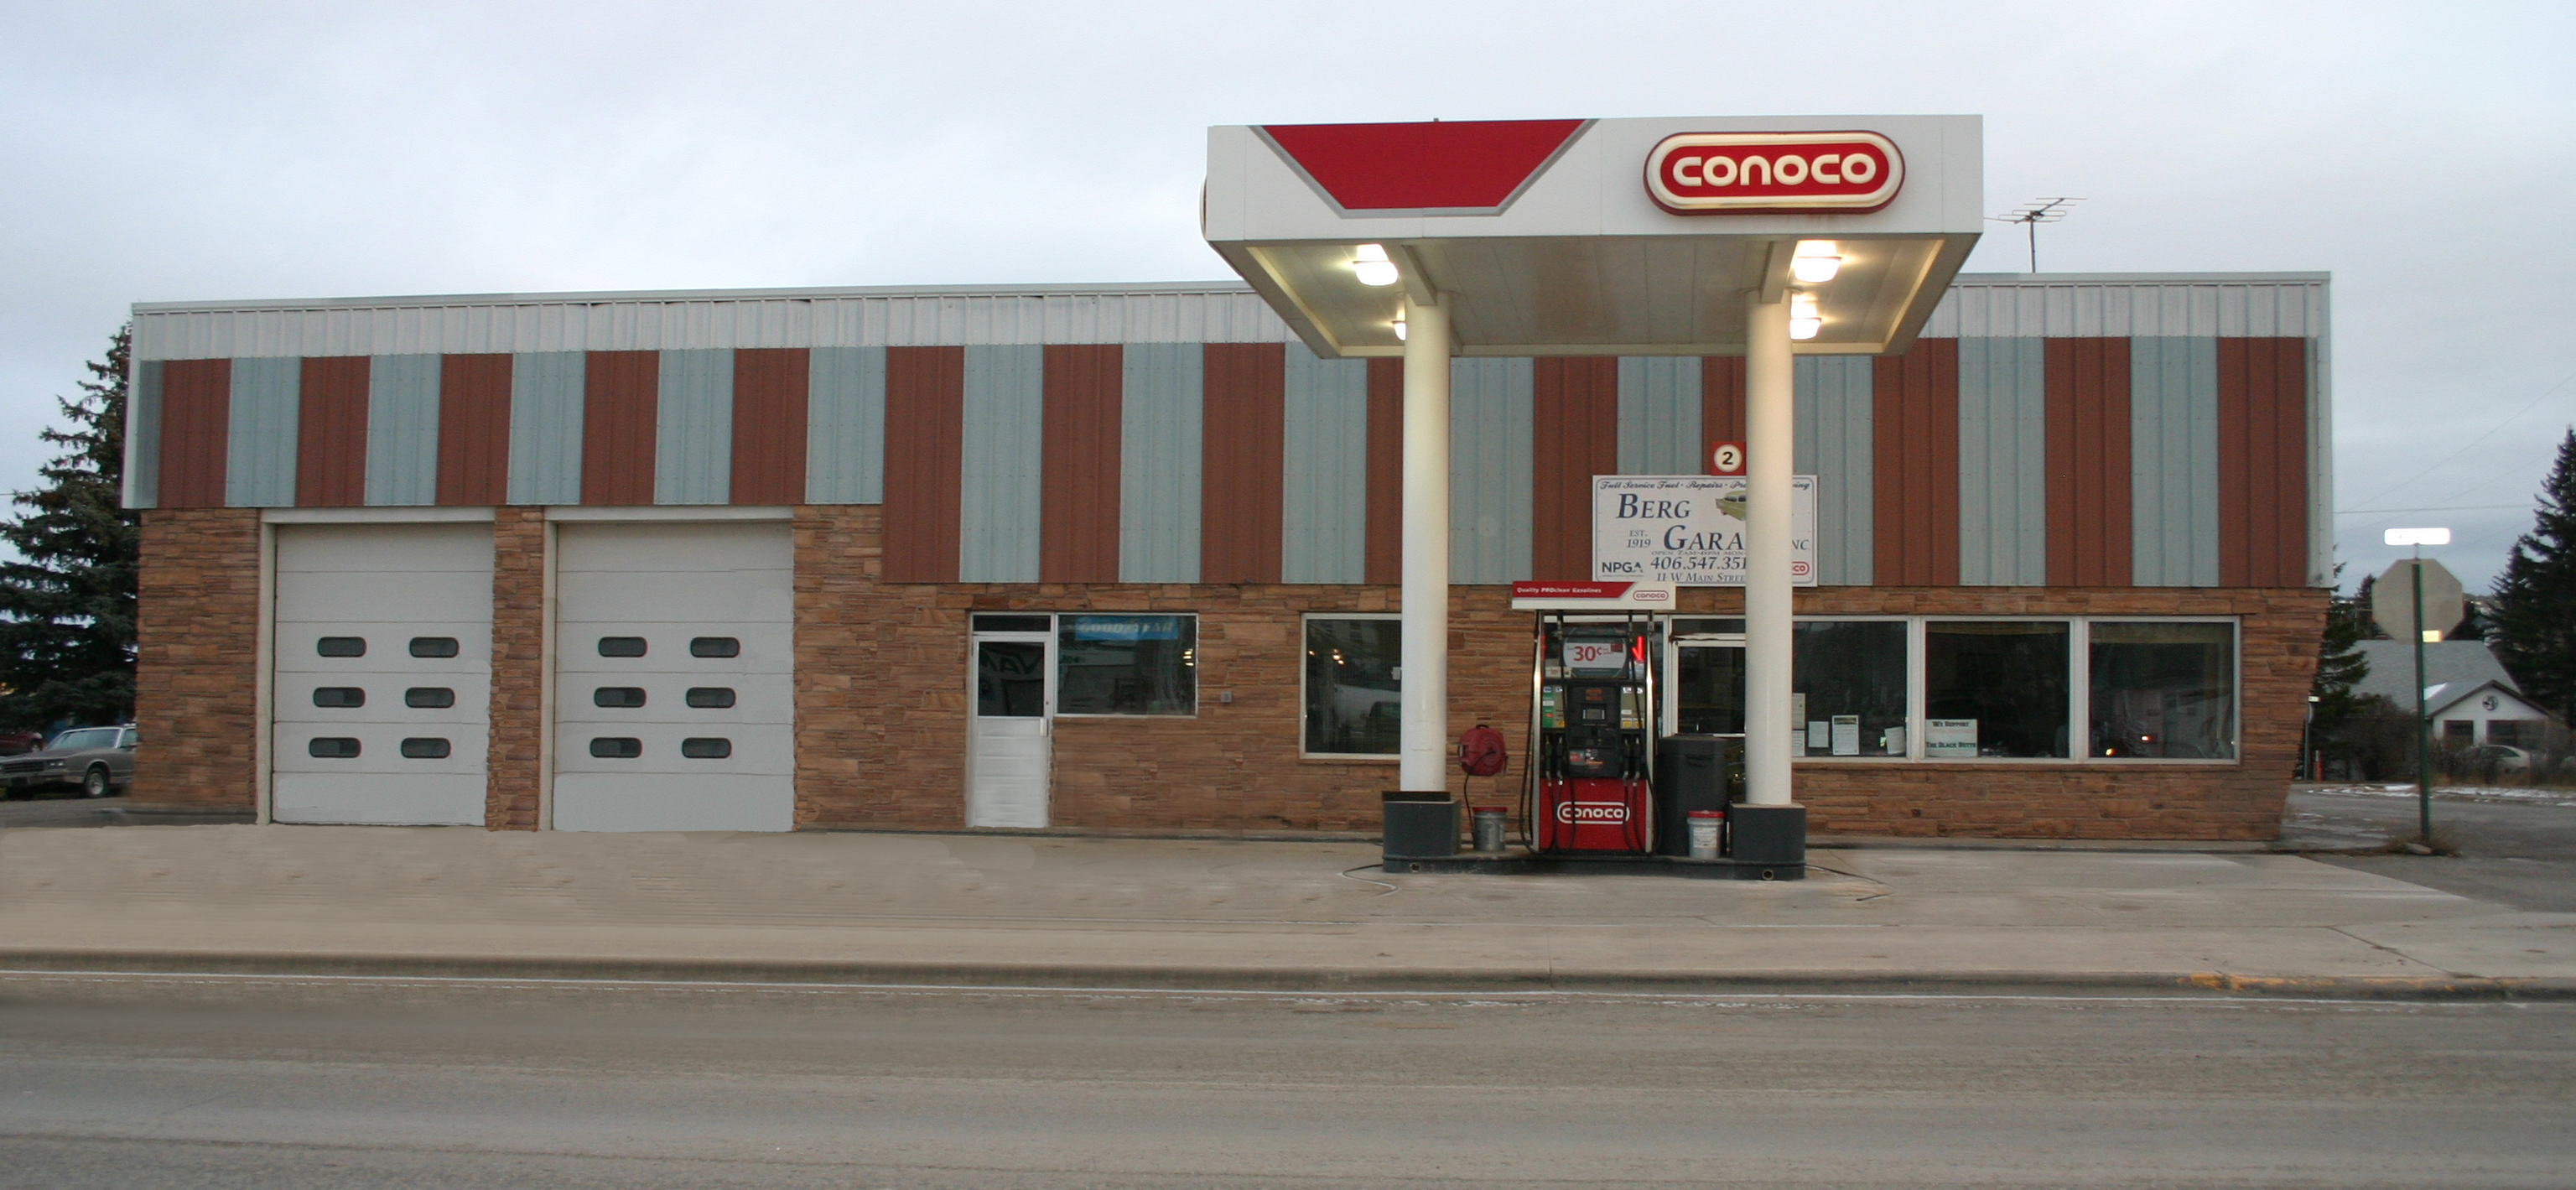 Conoco gas and service station storefront